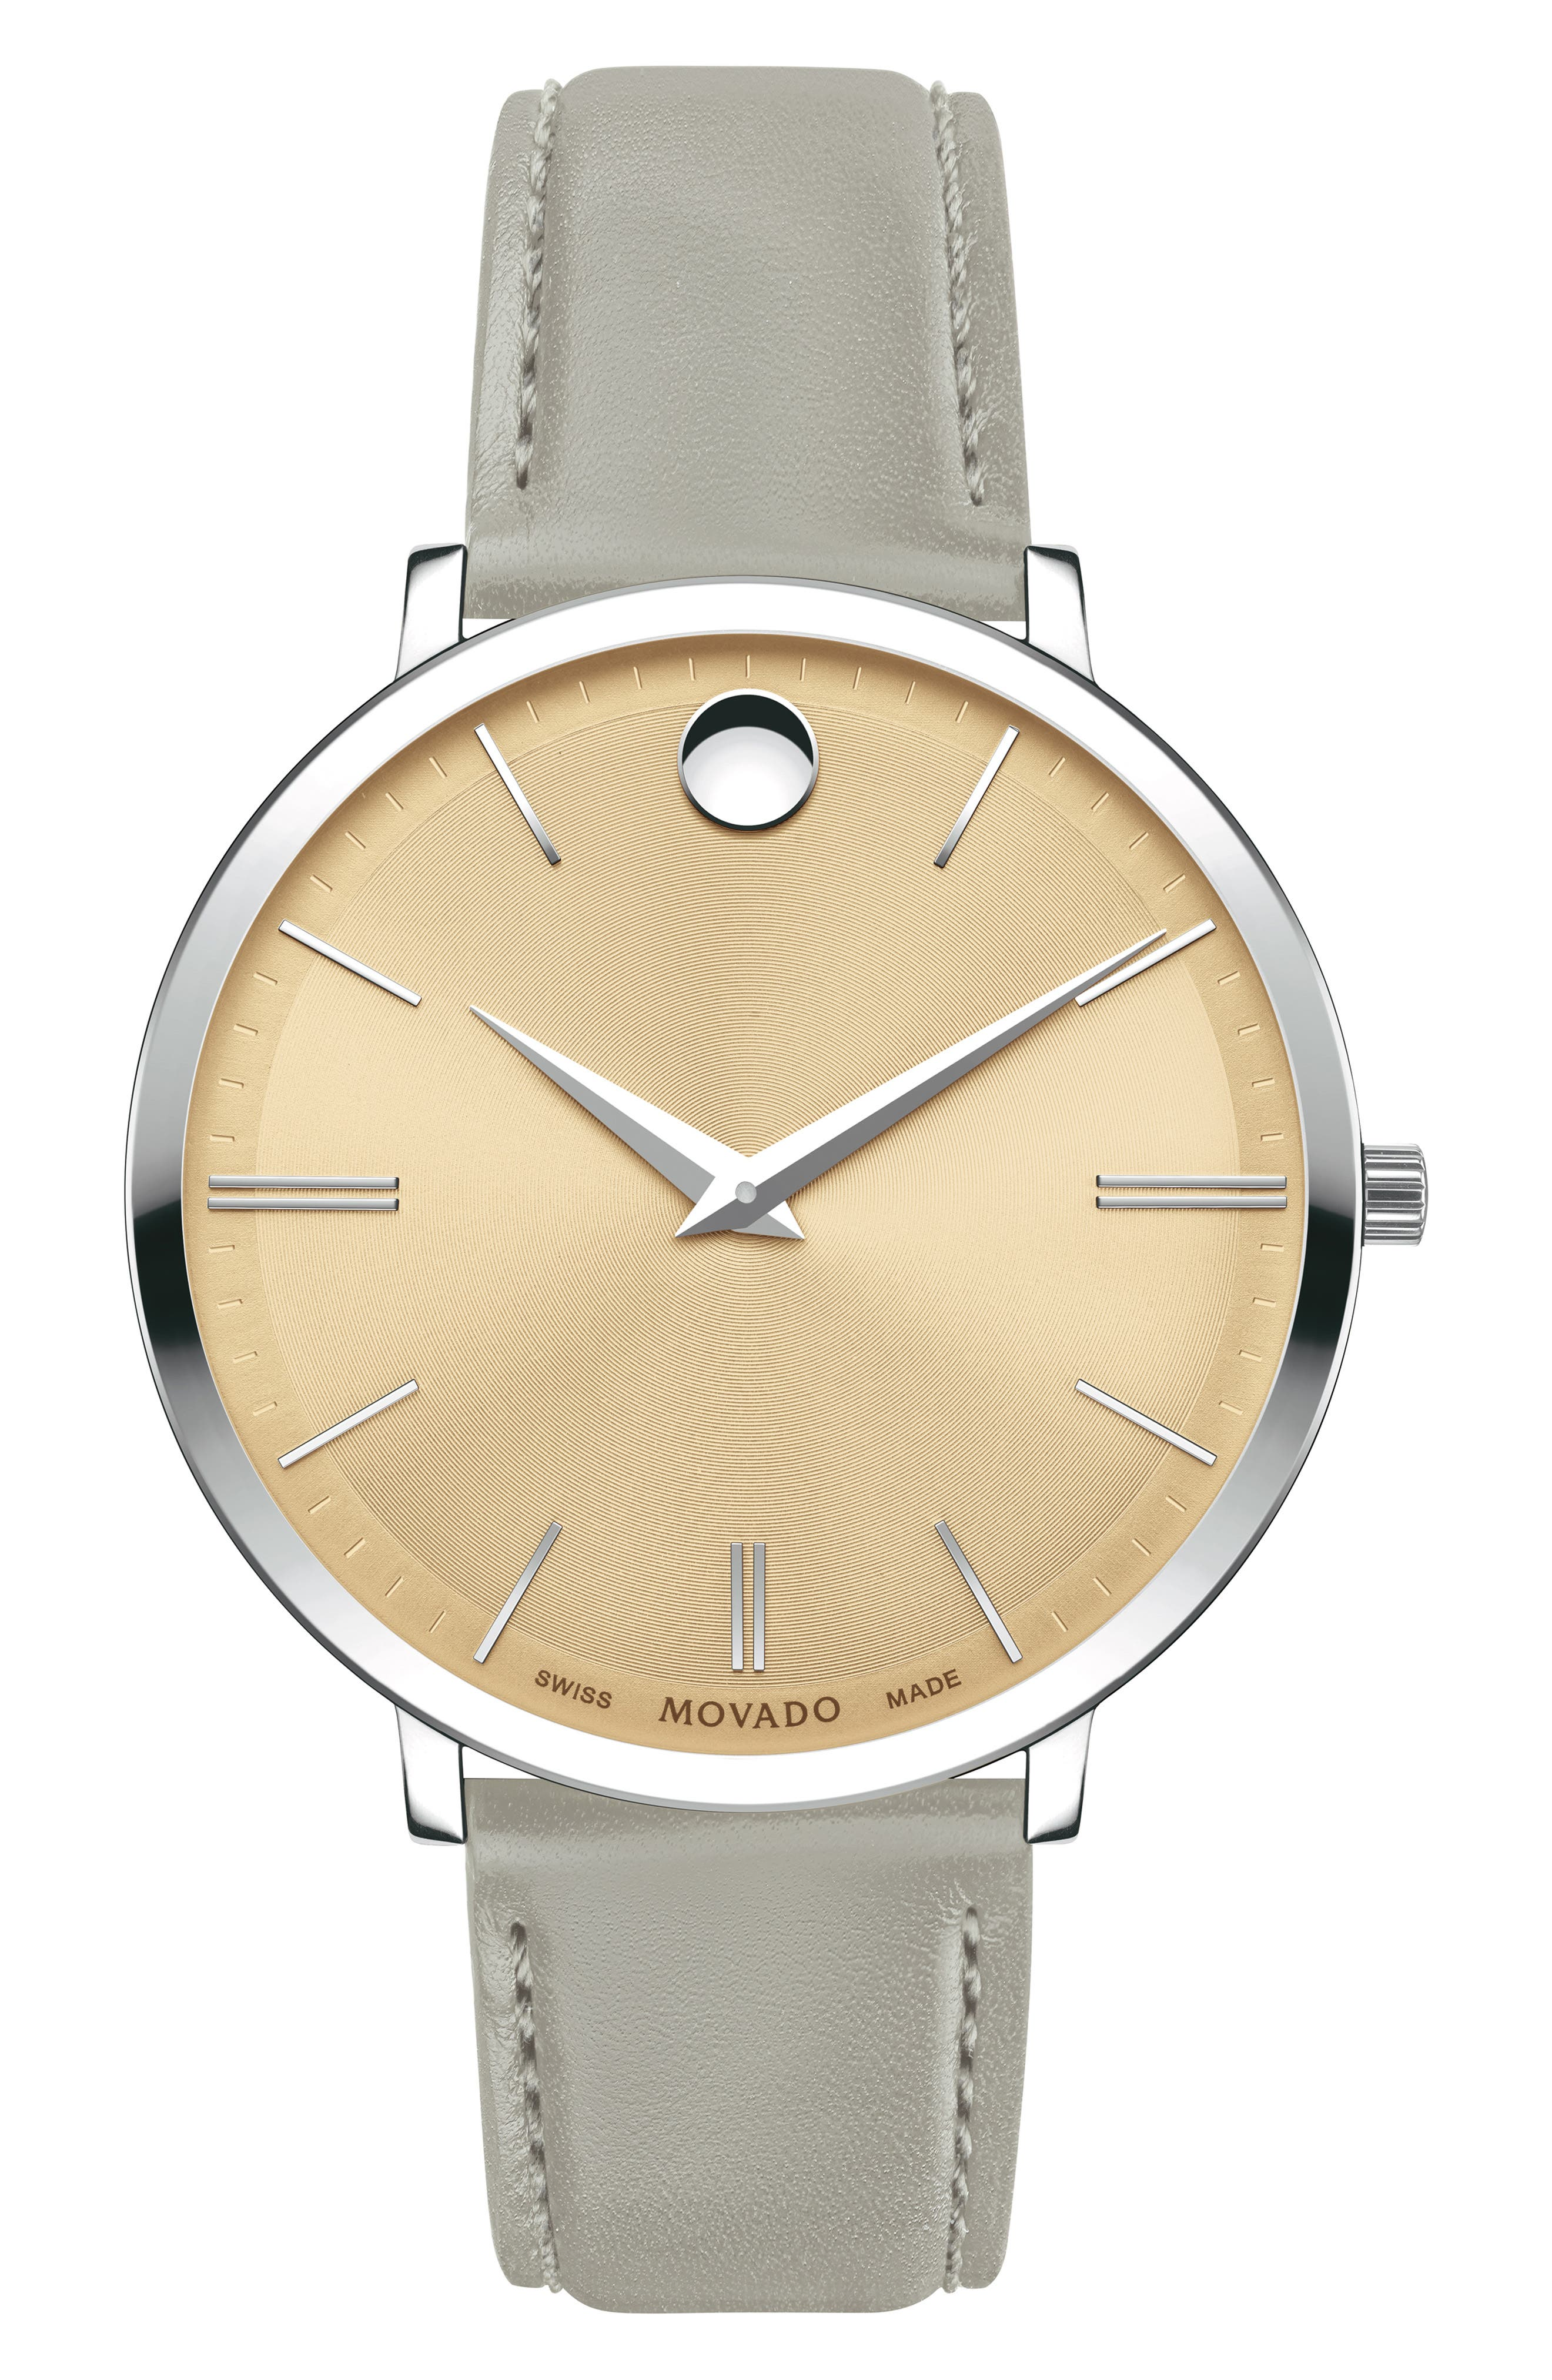 MOVADO, Ultraslim Leather Strap Watch, 35mm, Main thumbnail 1, color, GREY/ BEIGE/ SILVER